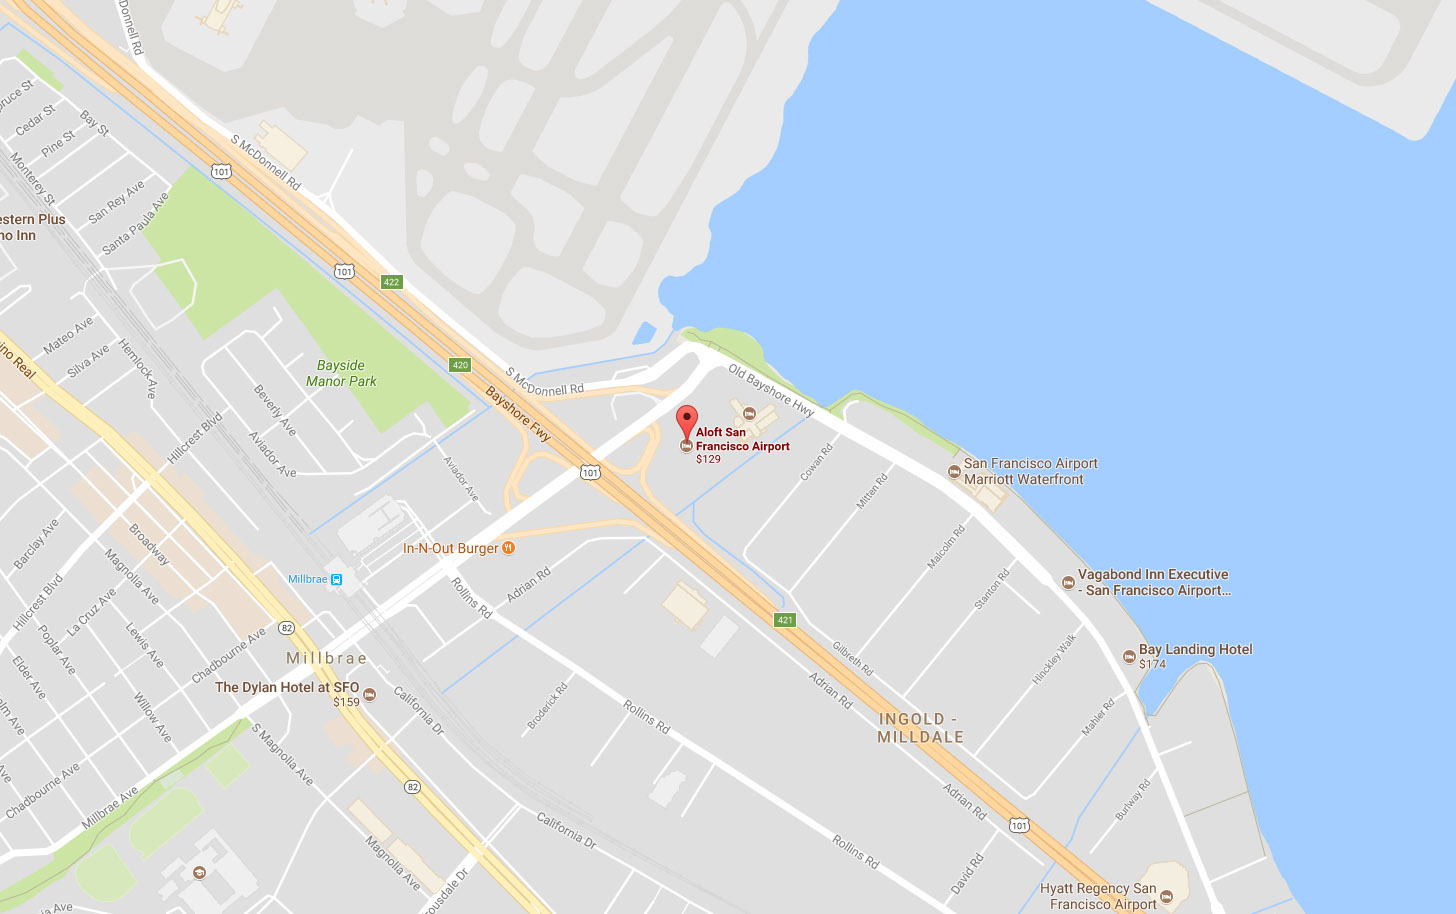 Aloft Hotel location map